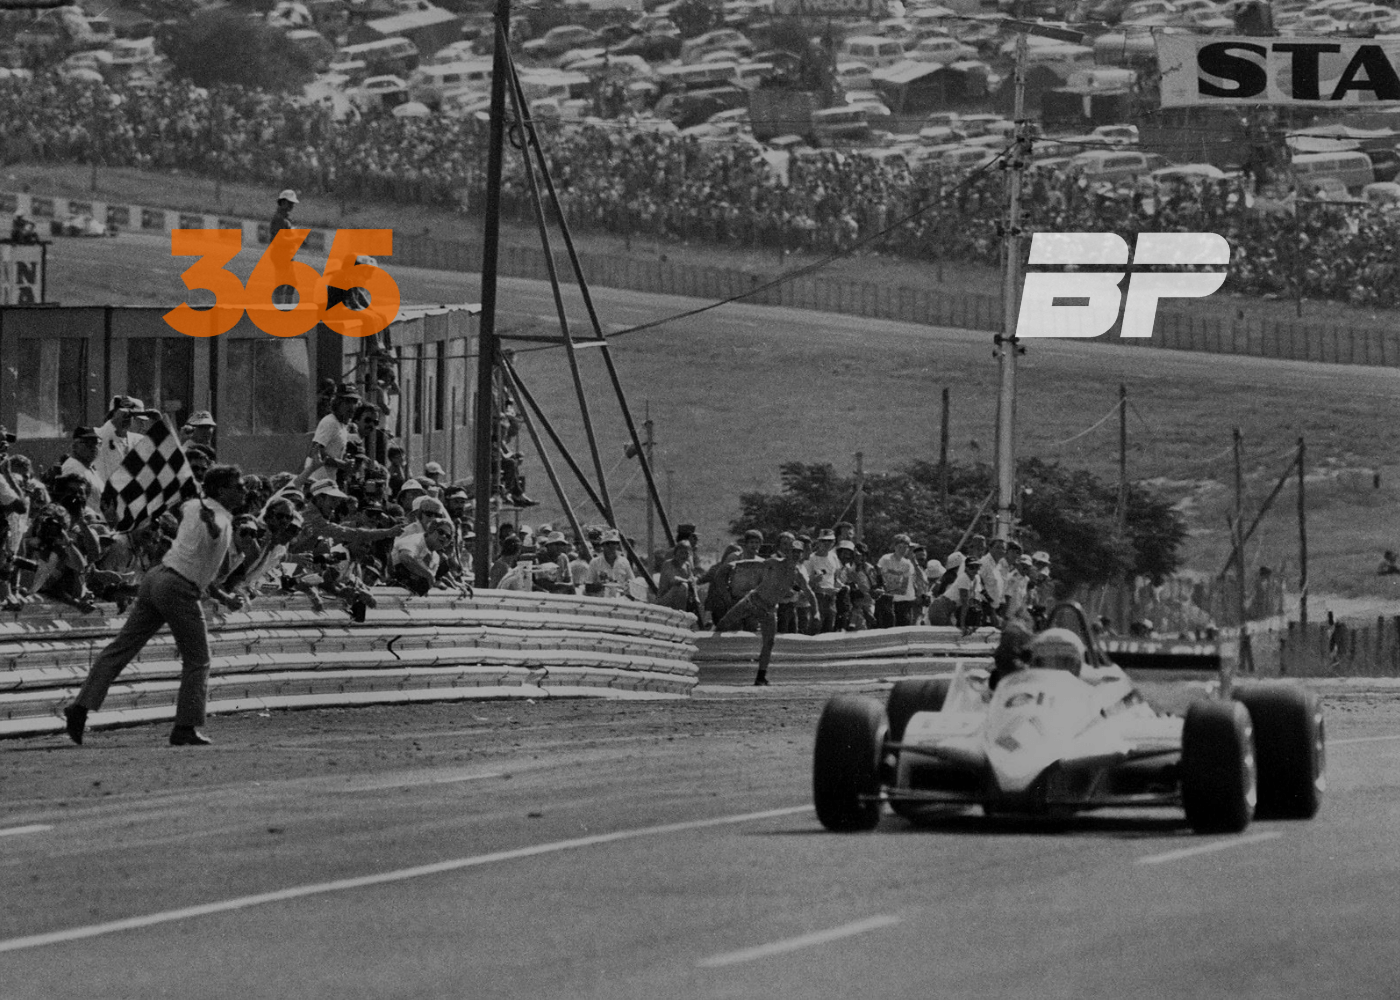 Photo of Volta de Lauda, greve dos pilotos e aula de Prost